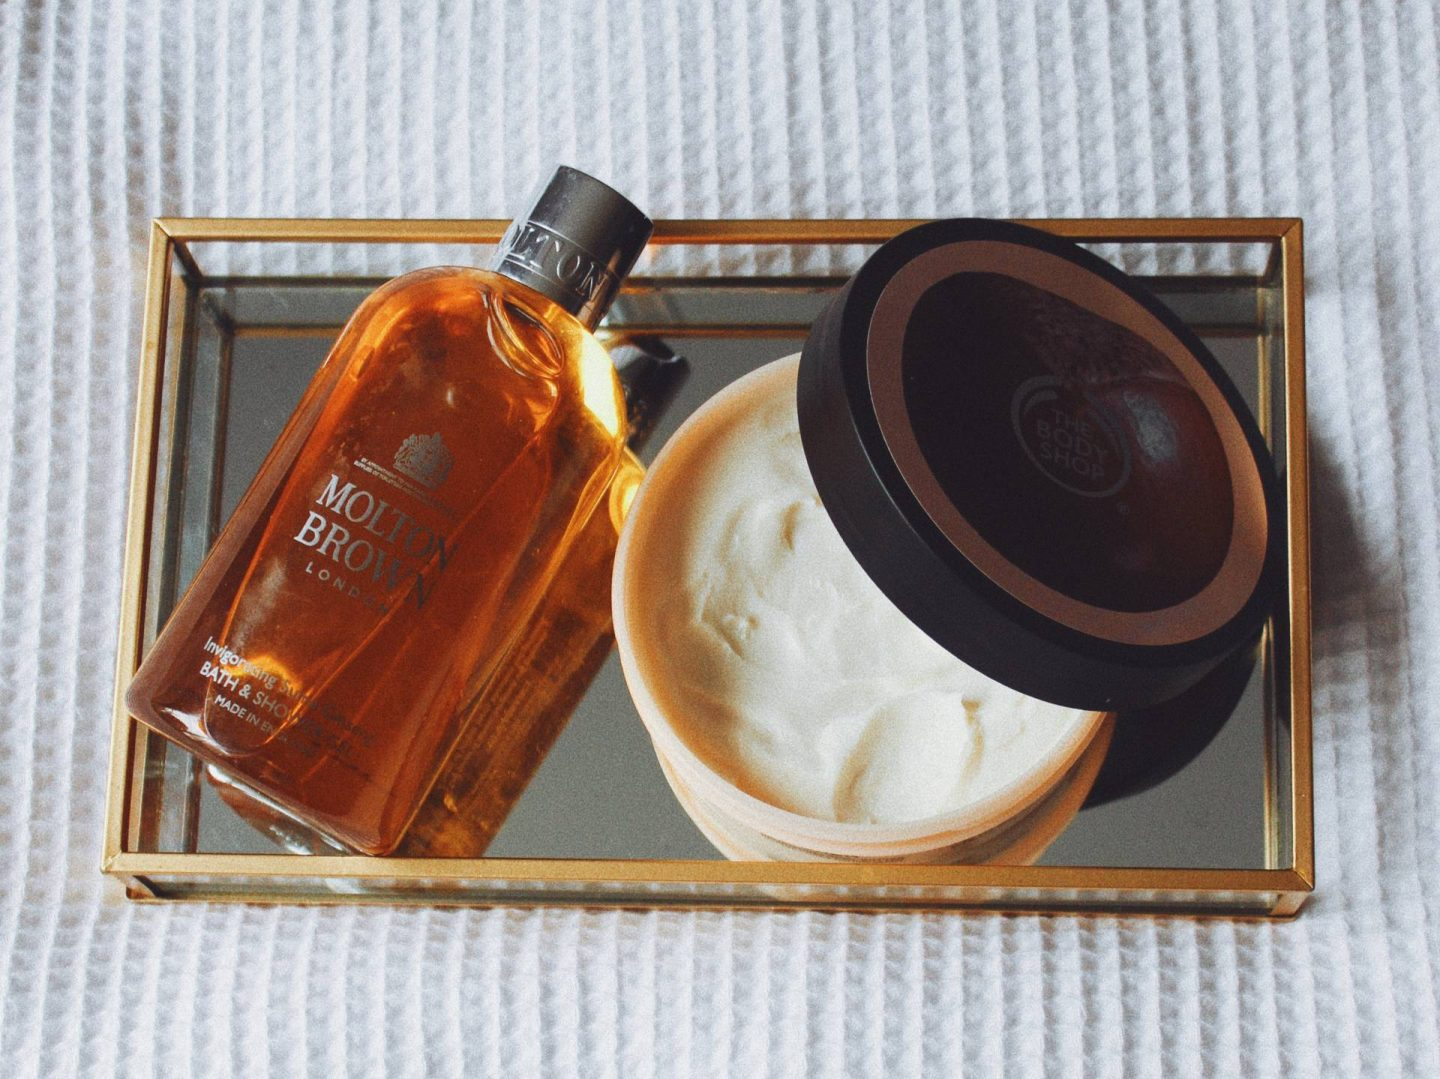 cult body care products